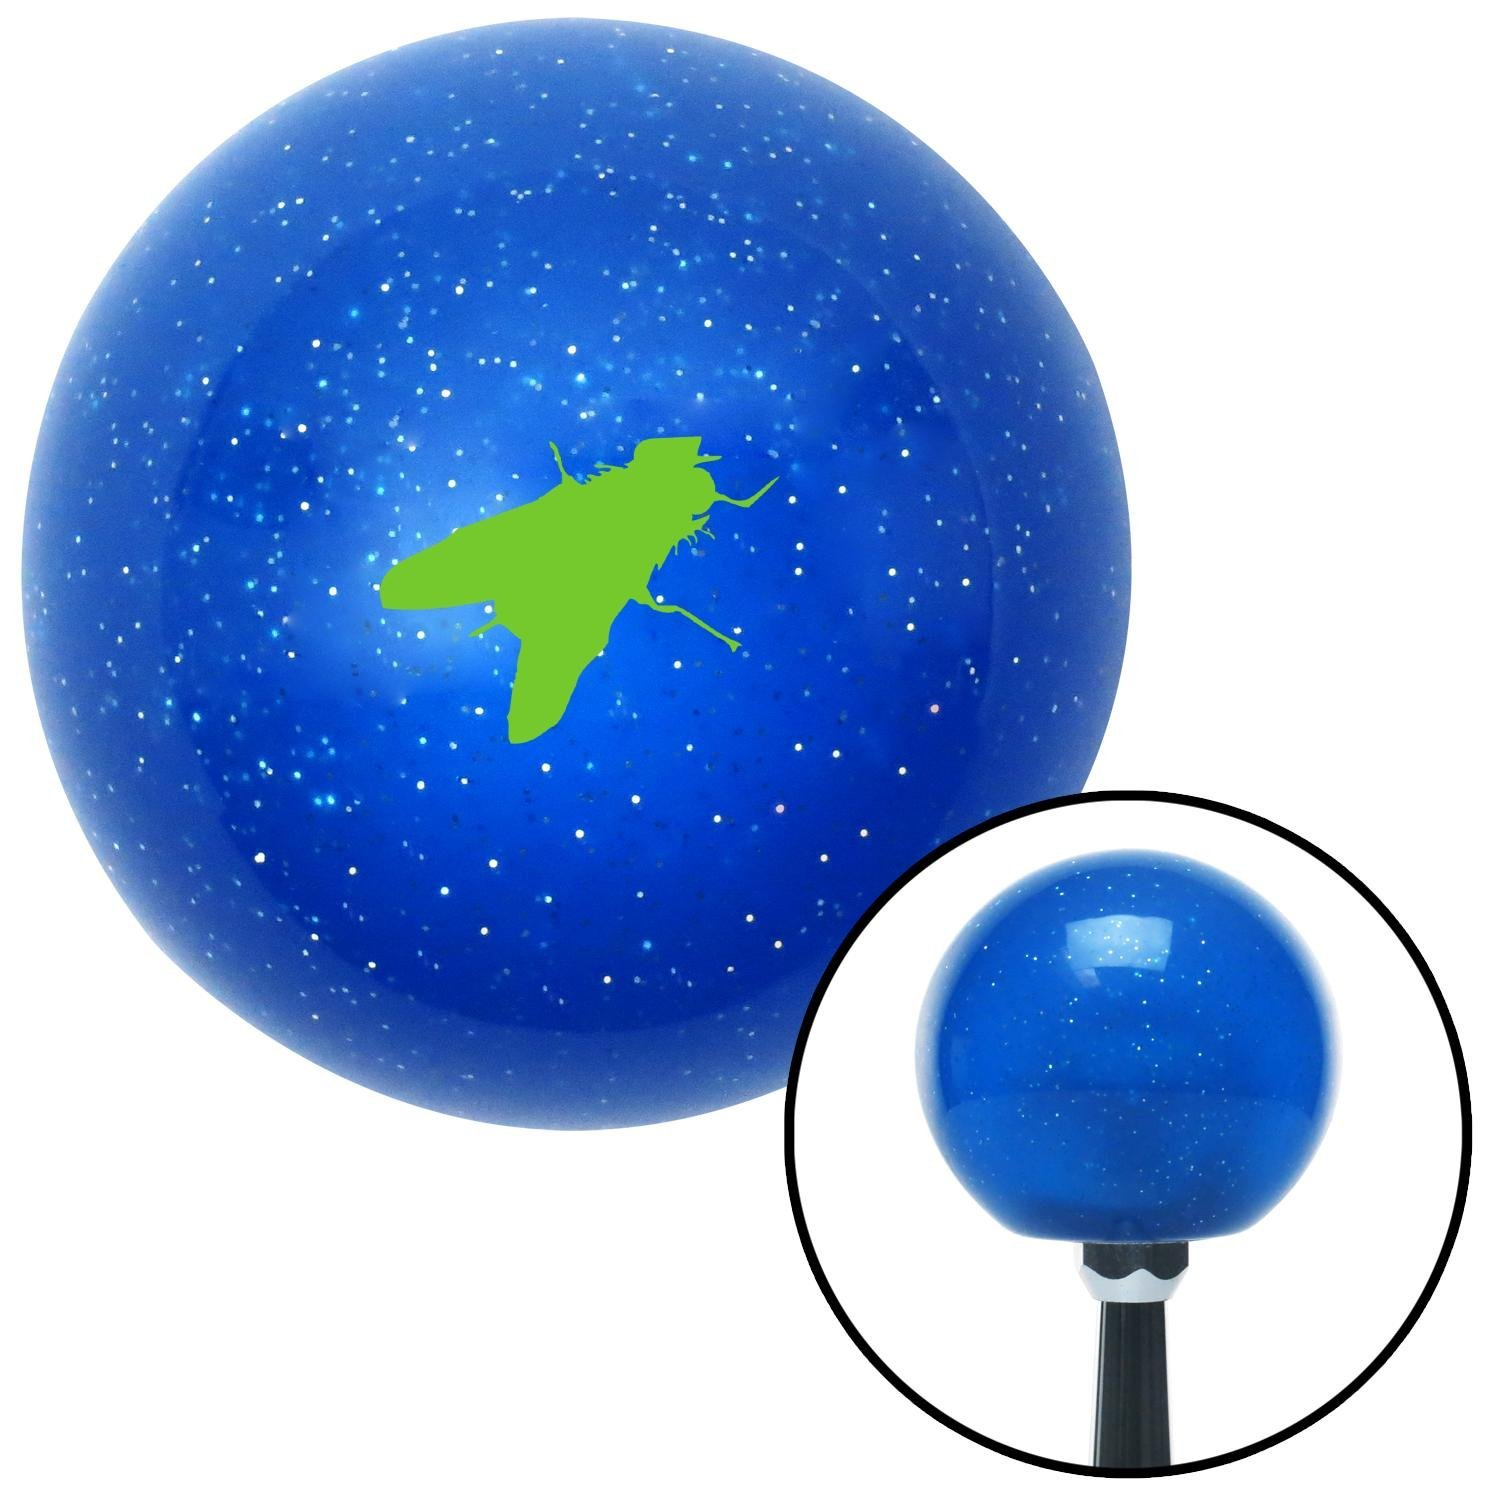 American Shifter 276077 Shift Knob Green Fly Blue Metal Flake with M16 x 1.5 Insert